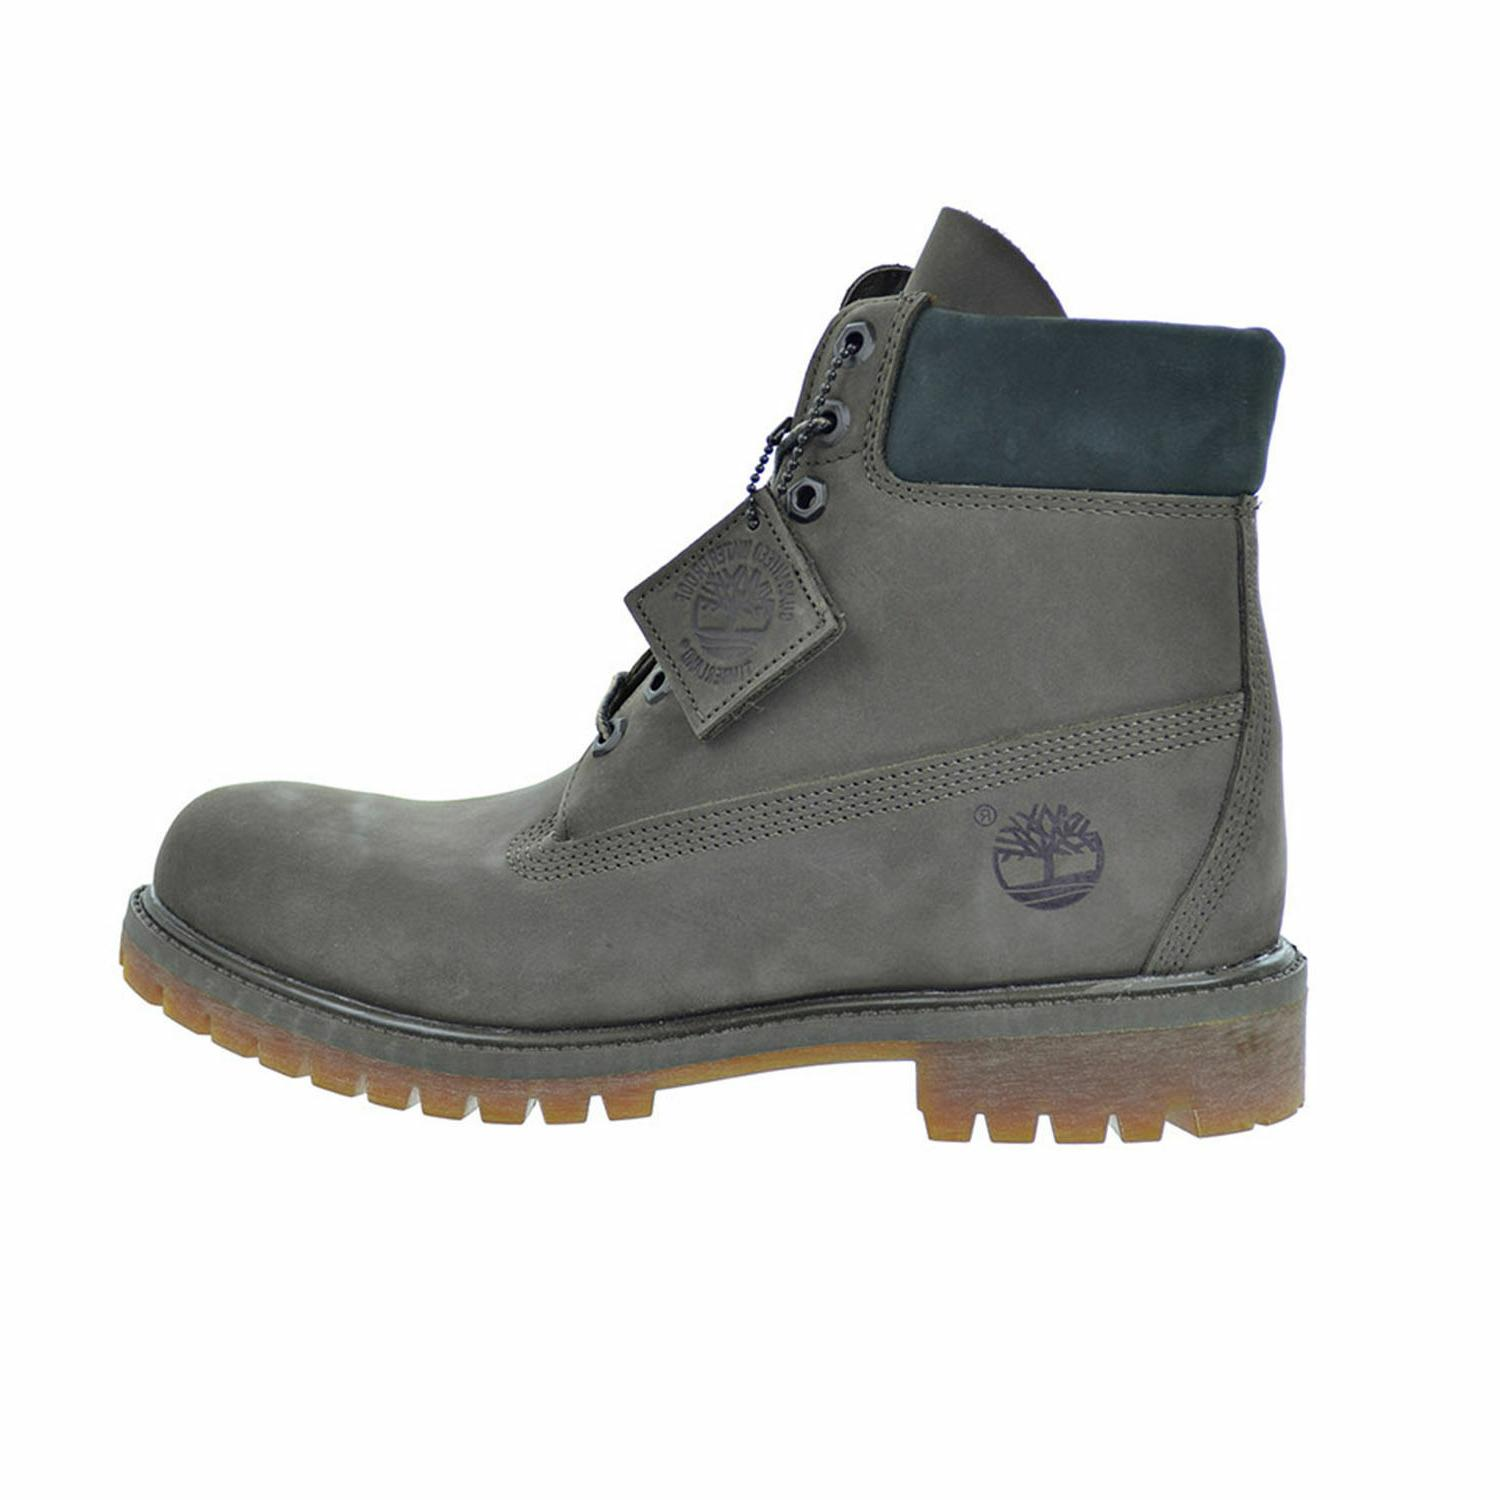 Timberland 6 Inch Premium Boots Brown Mens /Kids Leather Boo